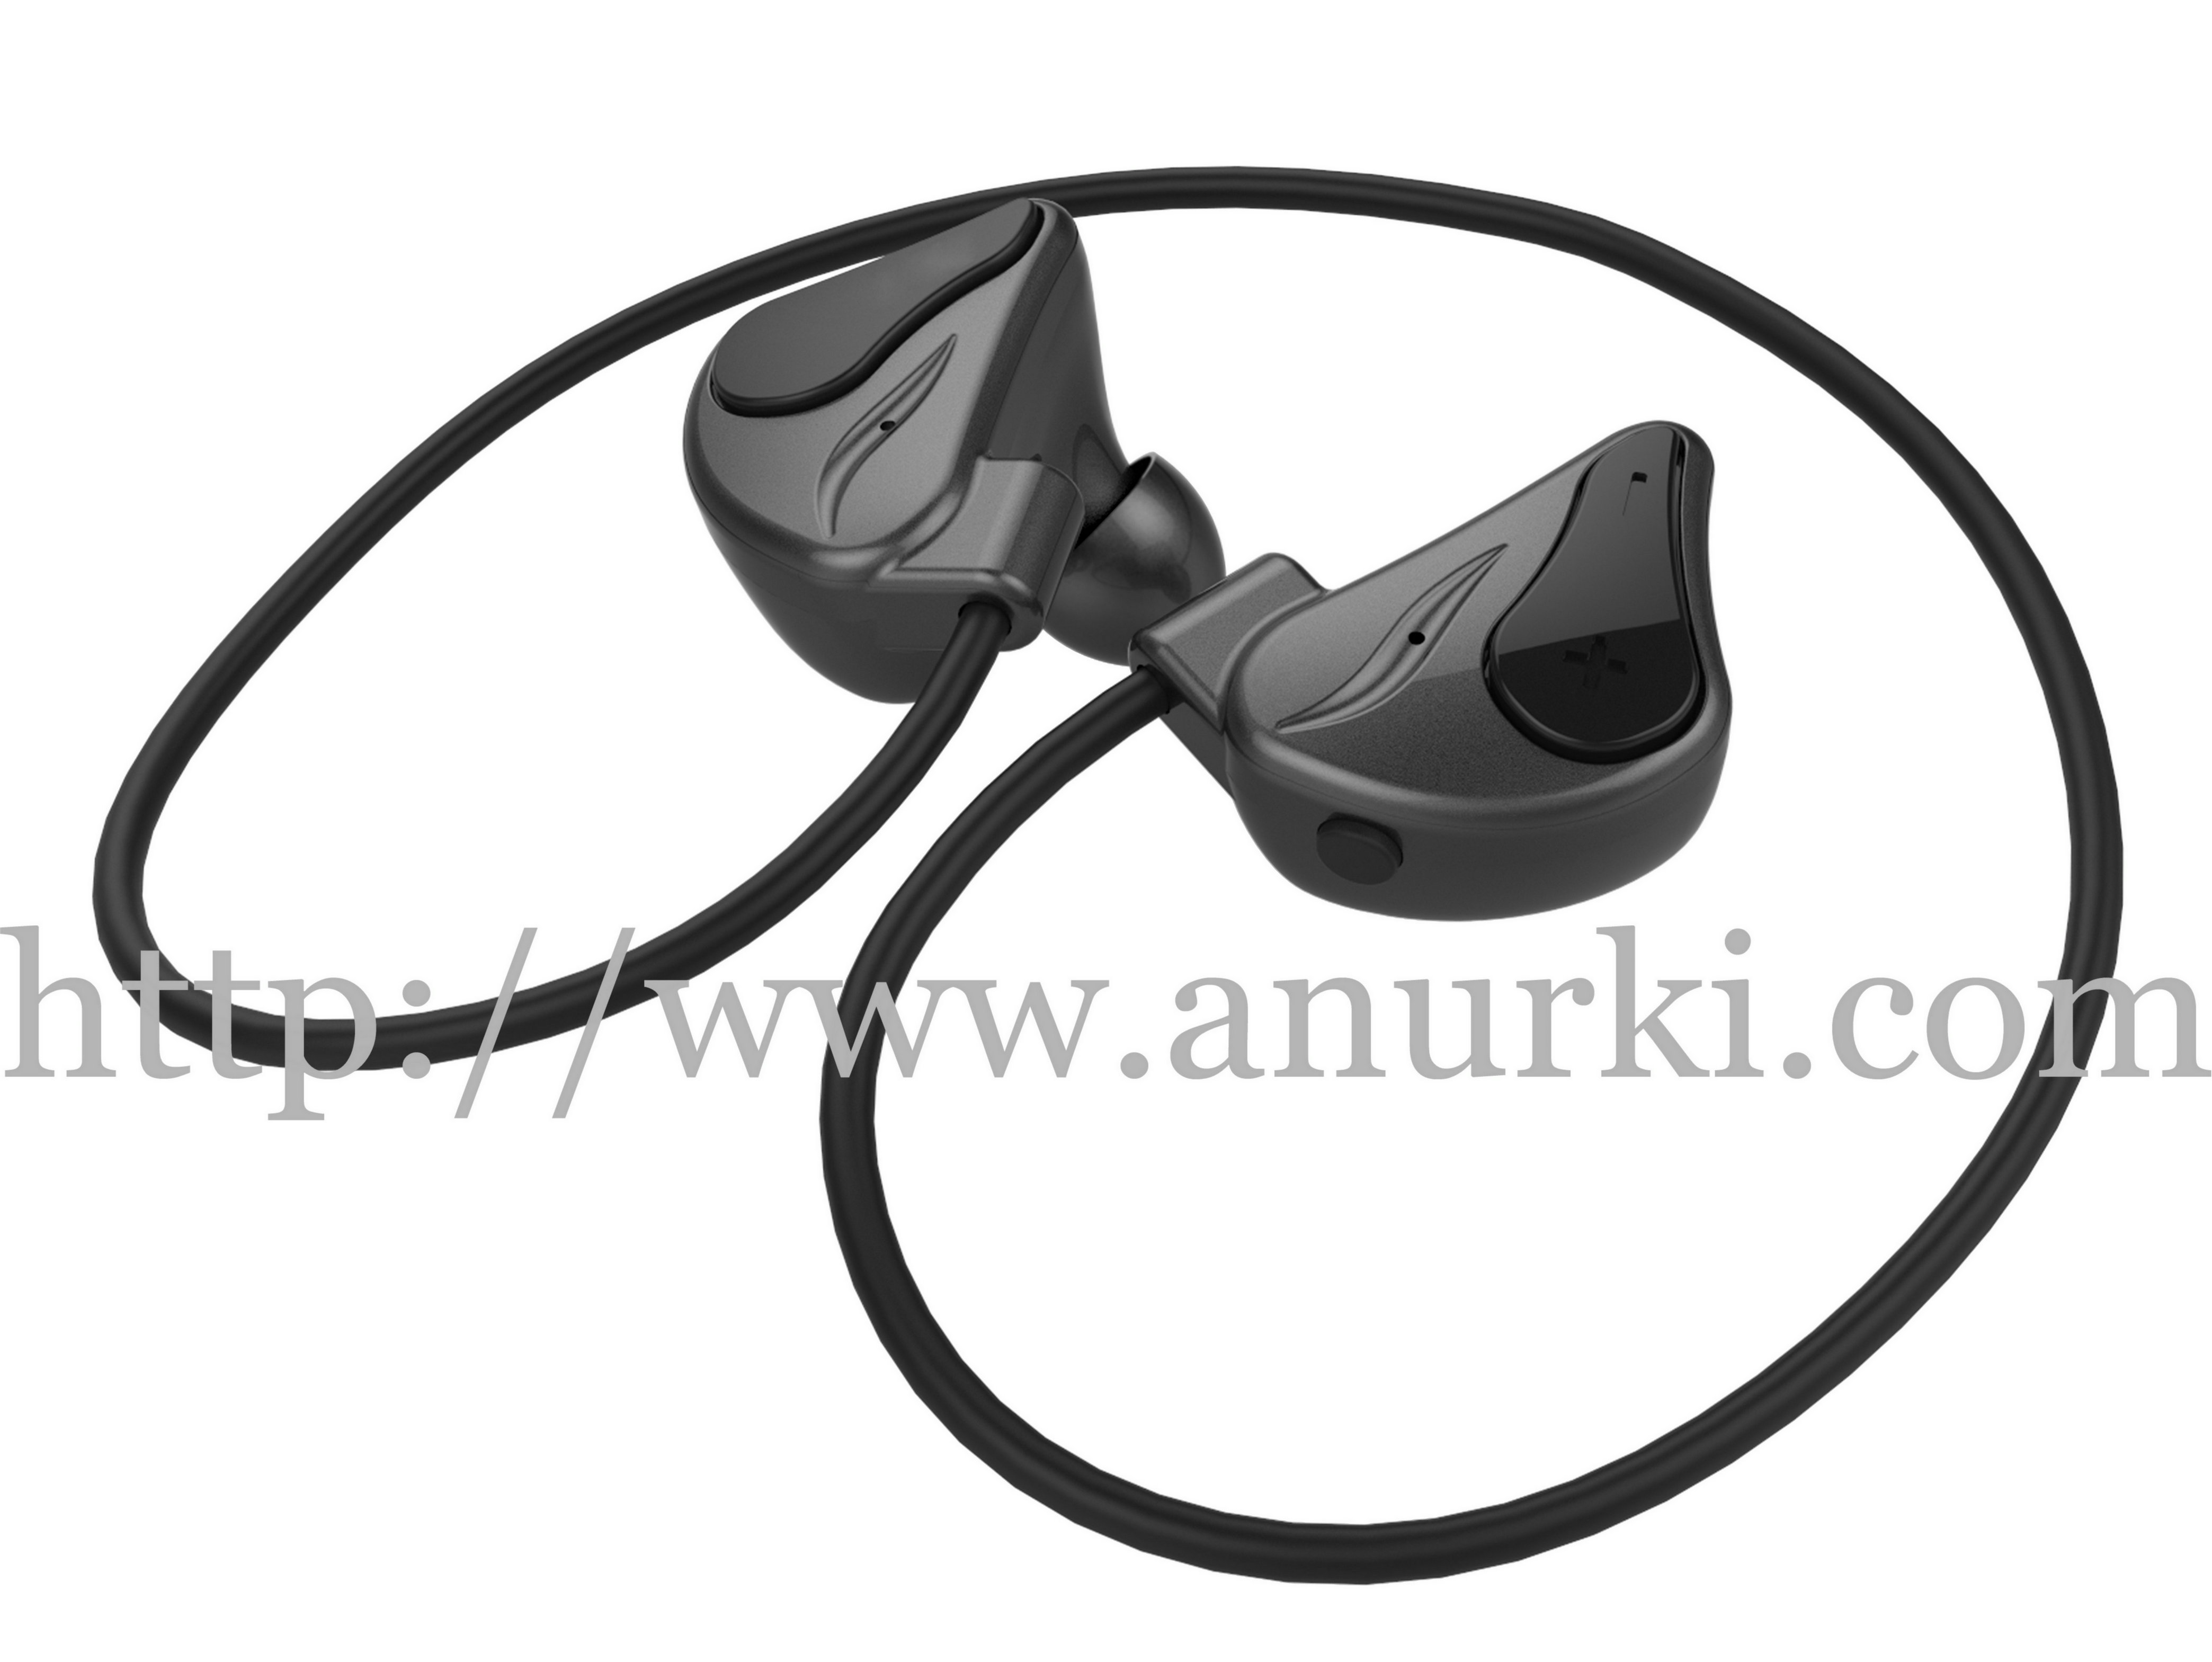 BT13 Neckband Wireless headphones